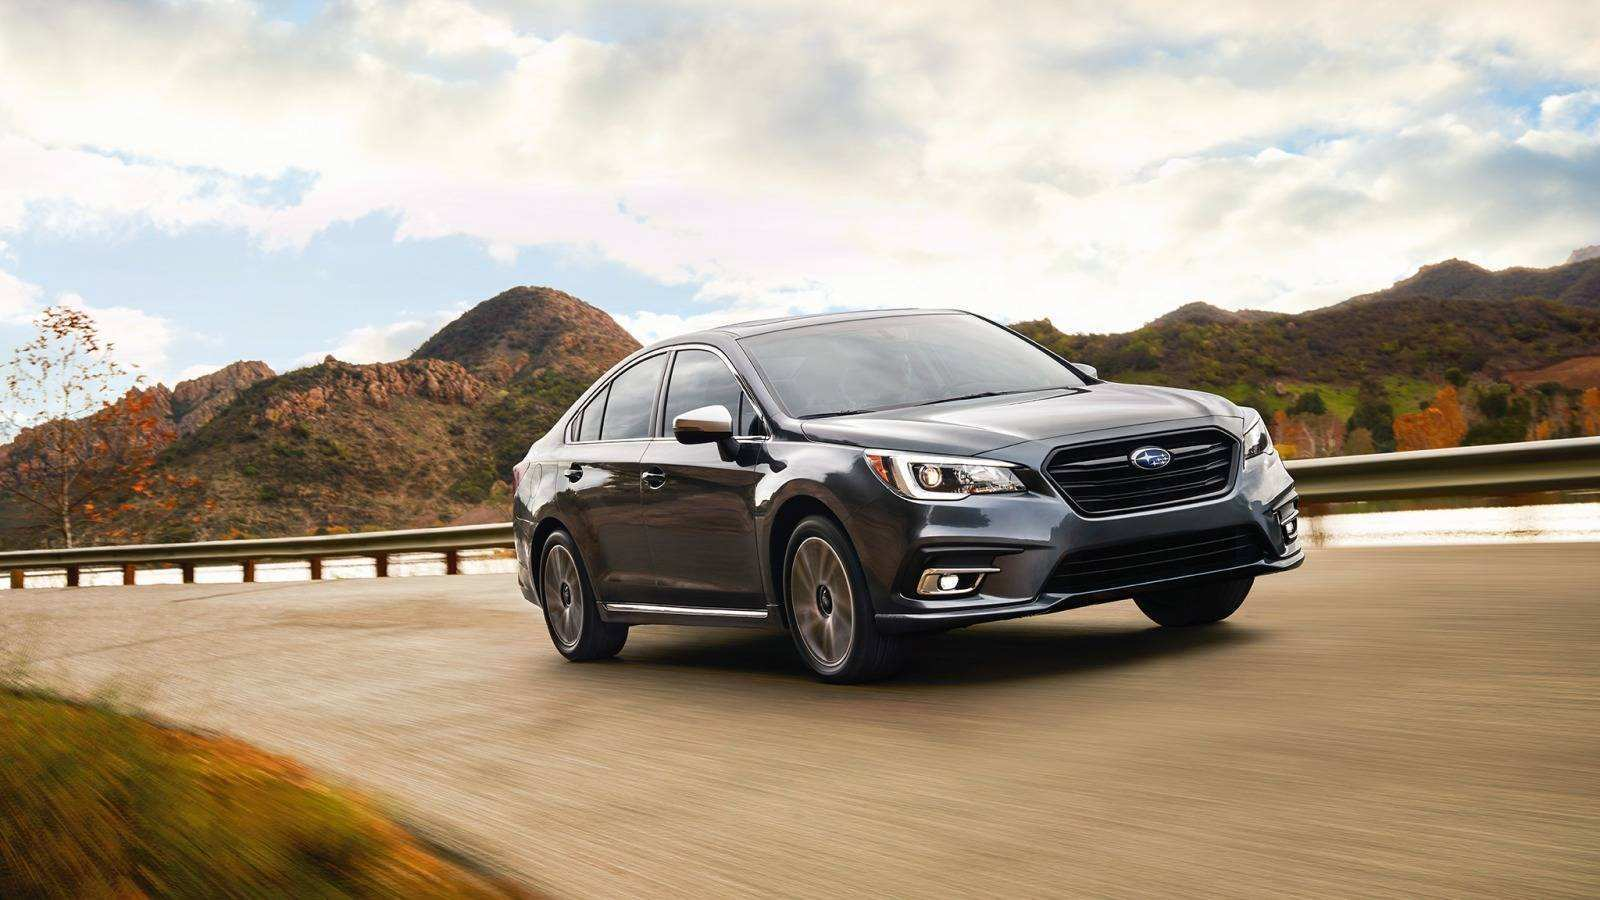 98 Concept of The Subaru Legacy Gt 2019 Performance Prices for The Subaru Legacy Gt 2019 Performance